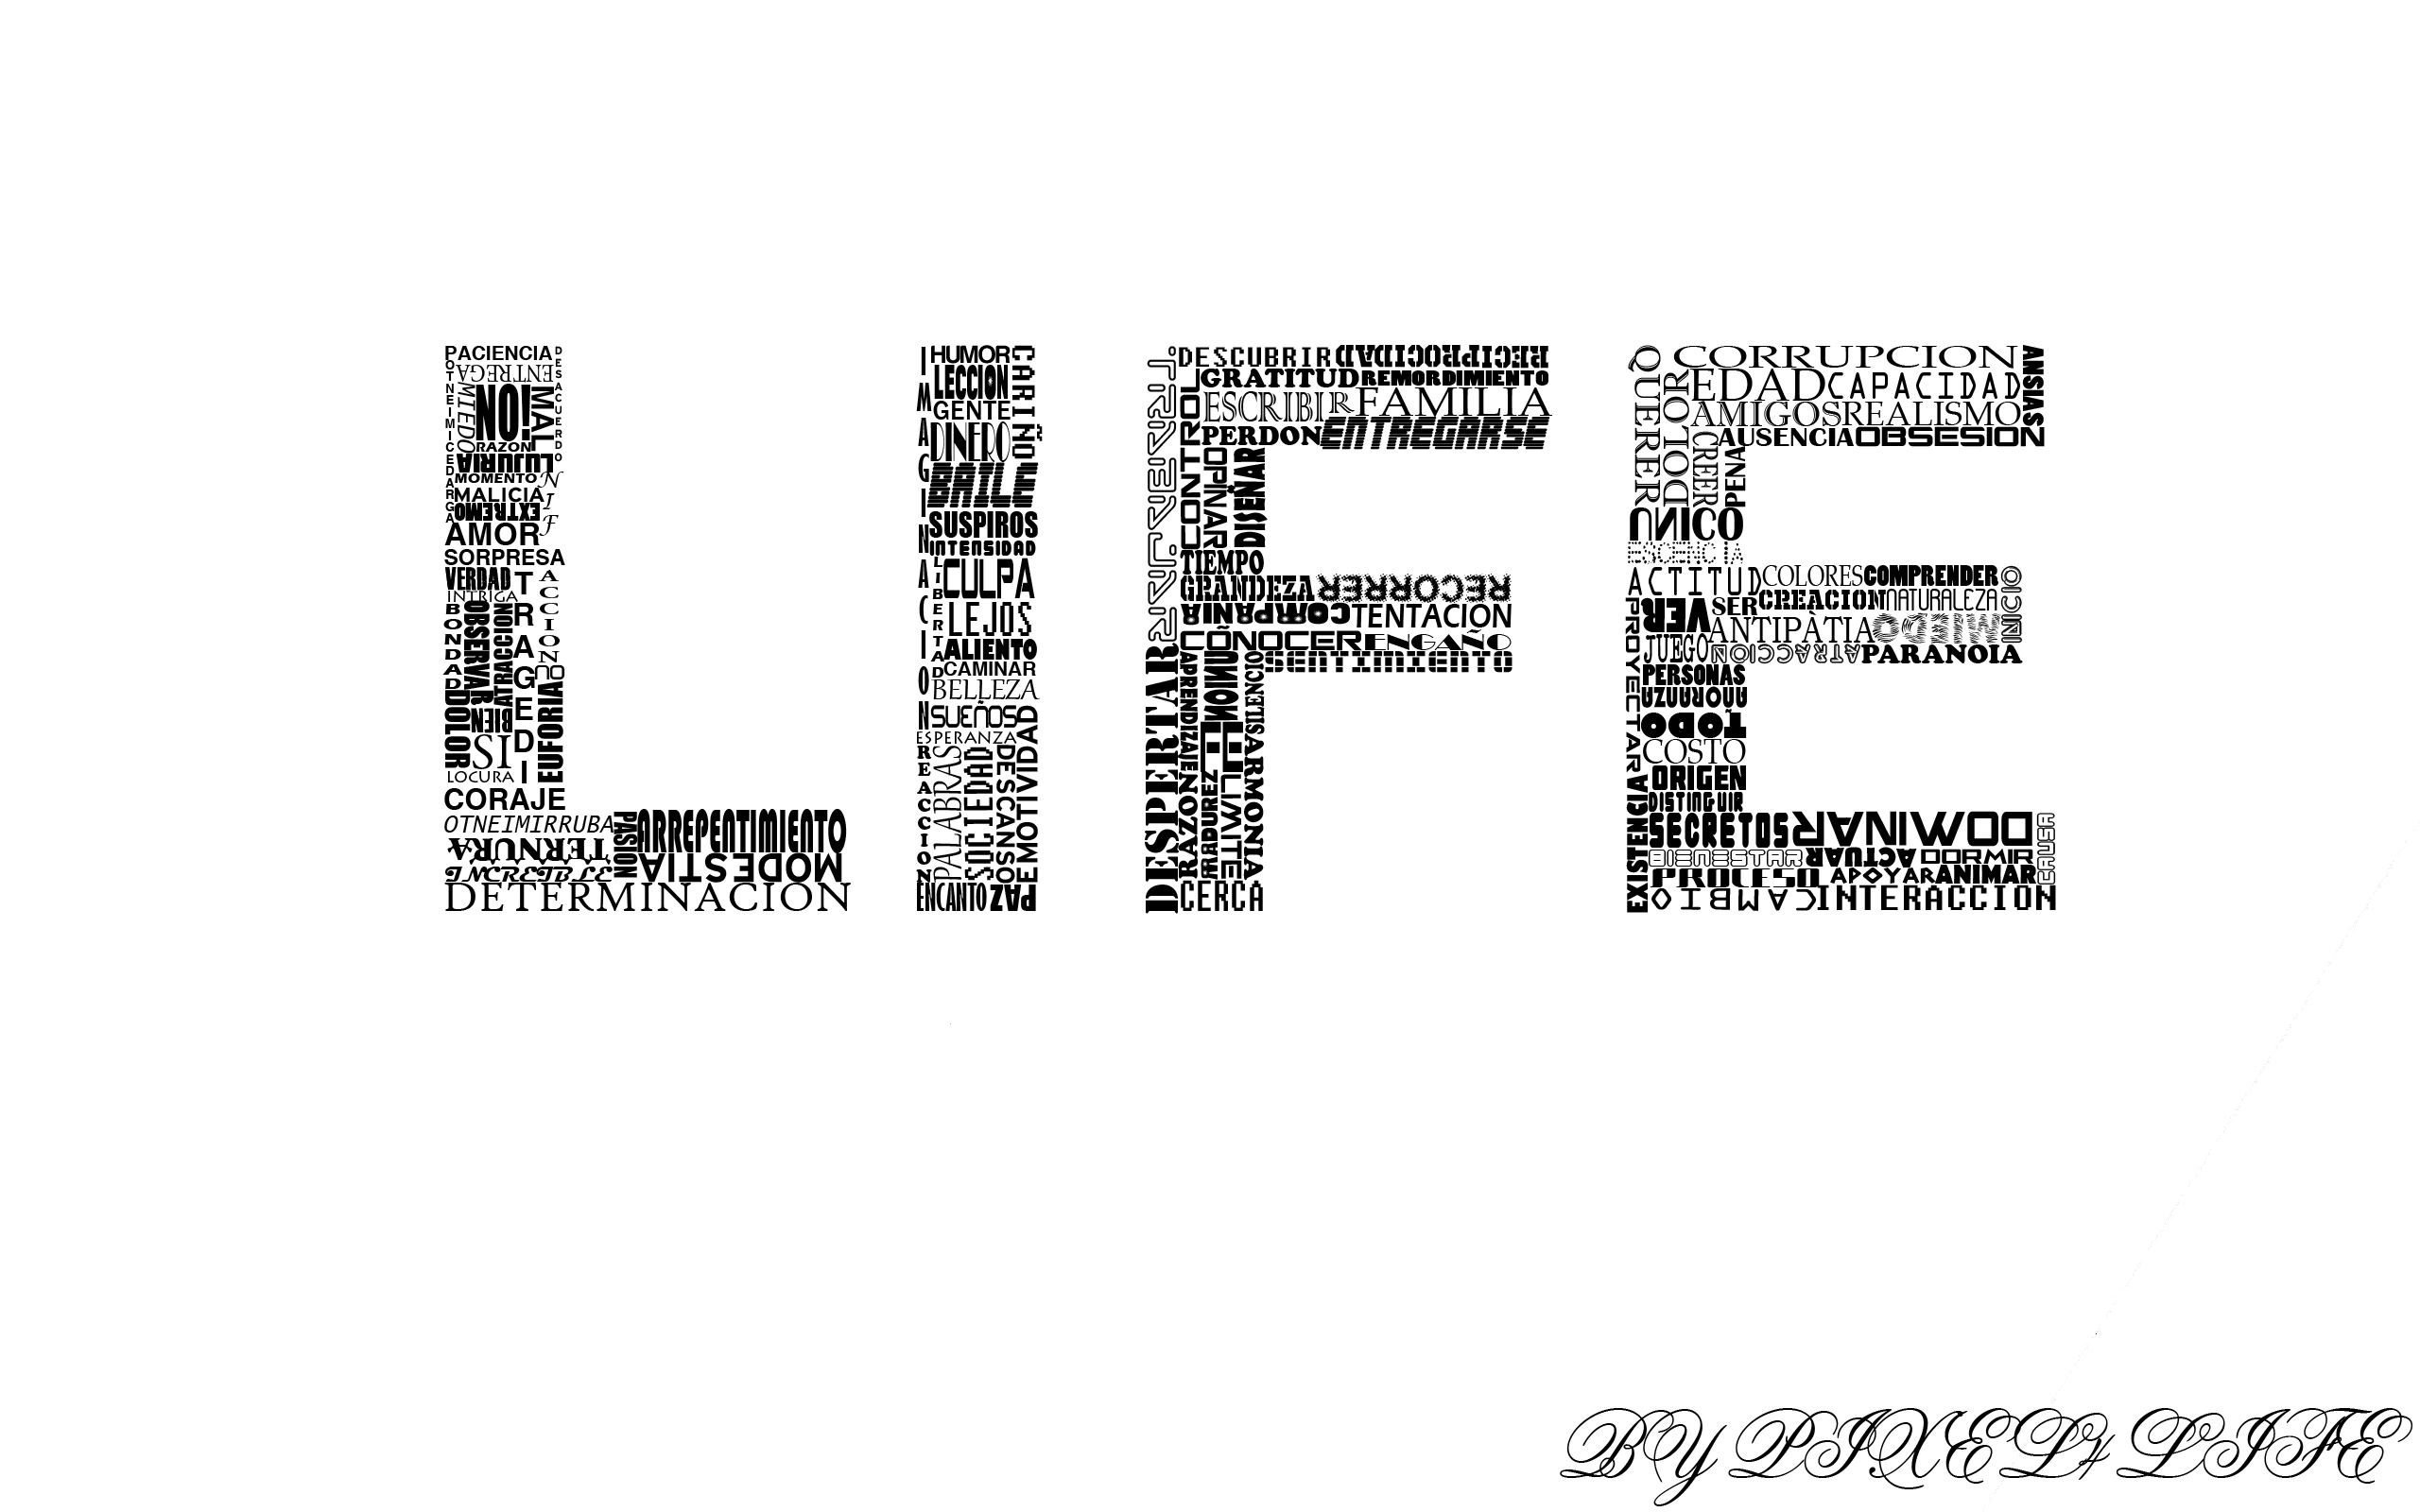 130 words of life by pixel4life on DeviantArt